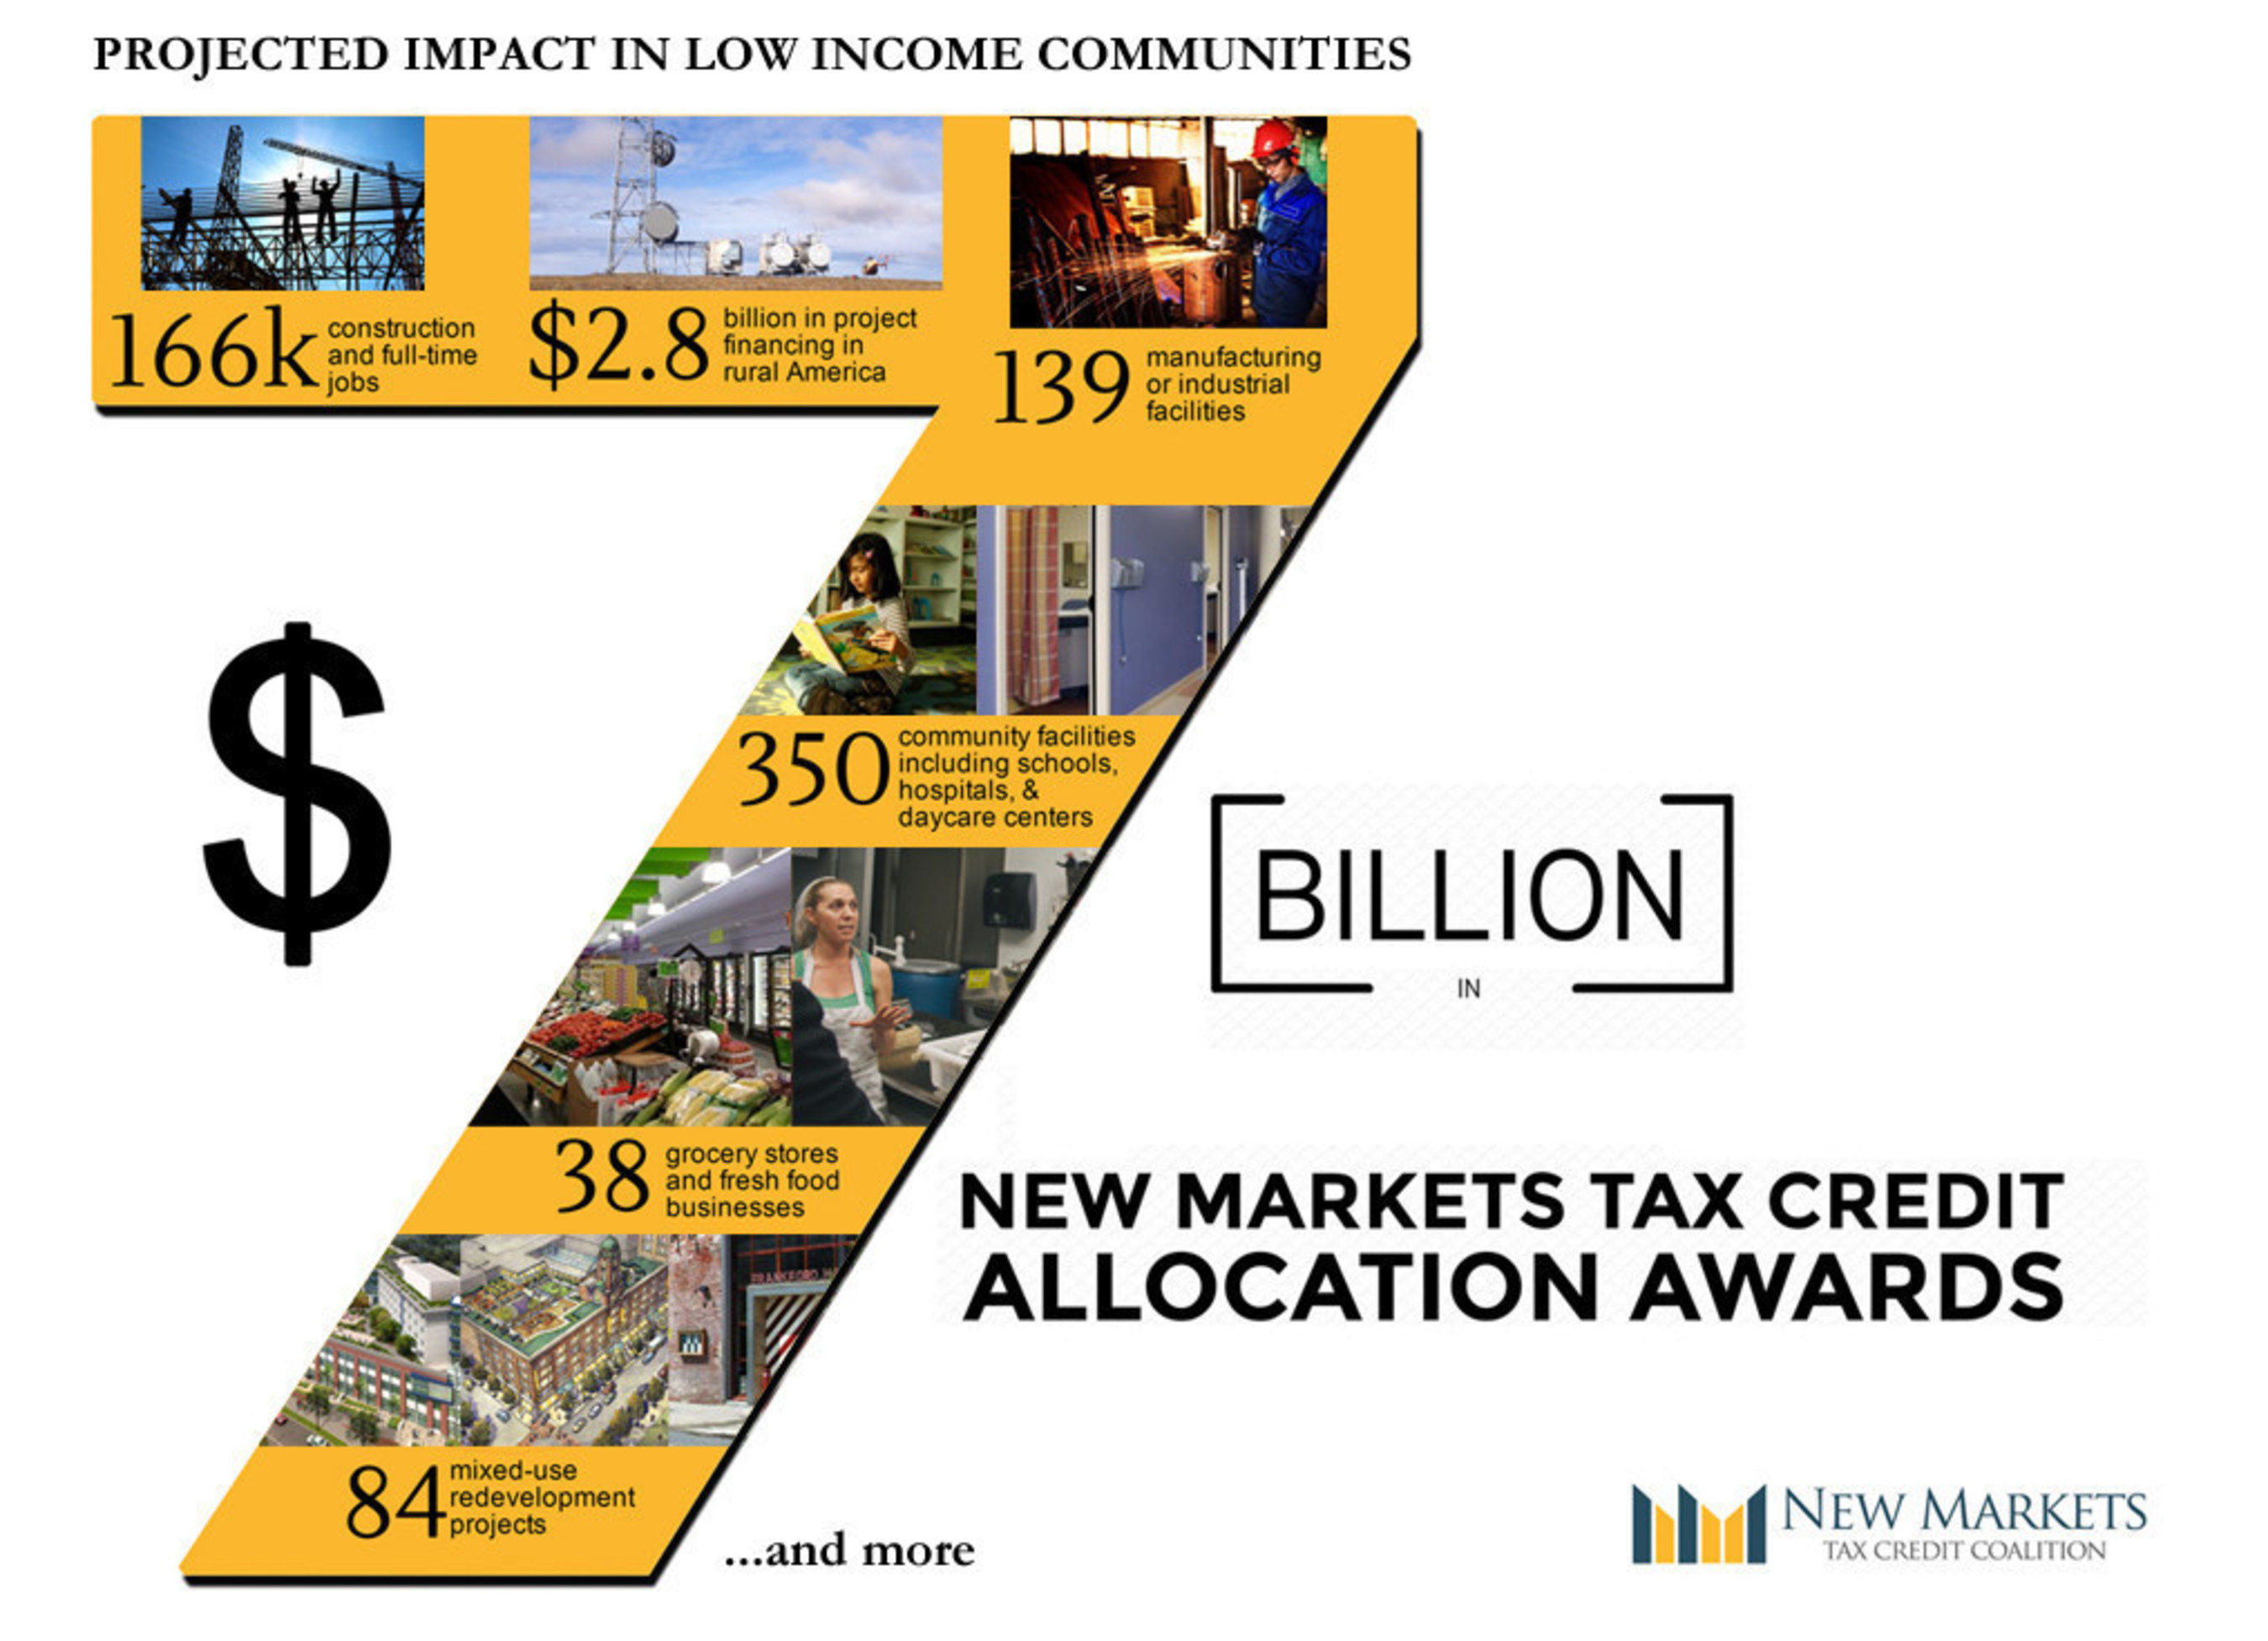 """""""The Coalition estimates that the latest round, based on analysis of more than 4,000 NMTC projects, will finance 844 businesses and revitalization projects and create some 166,000 jobs for people in communities left behind, adding to the NMTC's long history of success,"""" said Bob Rapoza, spokesman for the NMTC Coalition."""